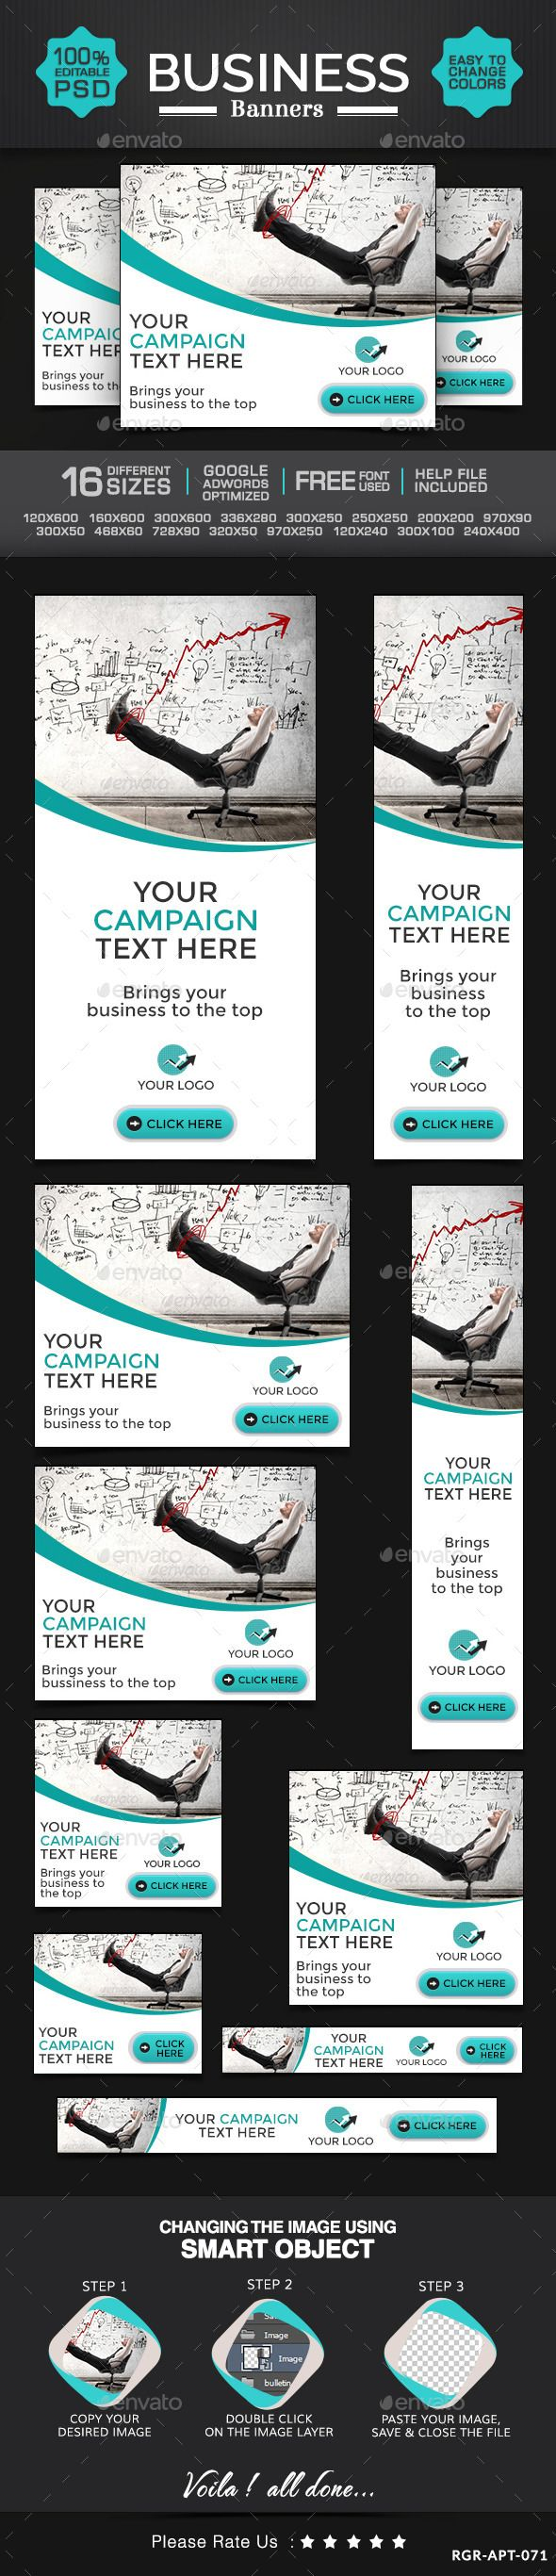 Business & Marketing Banners Template PSD   Buy and Download: http://graphicriver.net/item/business-marketing-banners/8987947?WT.ac=category_thumb&WT.z_author=BannerDesignCo&ref=ksioks